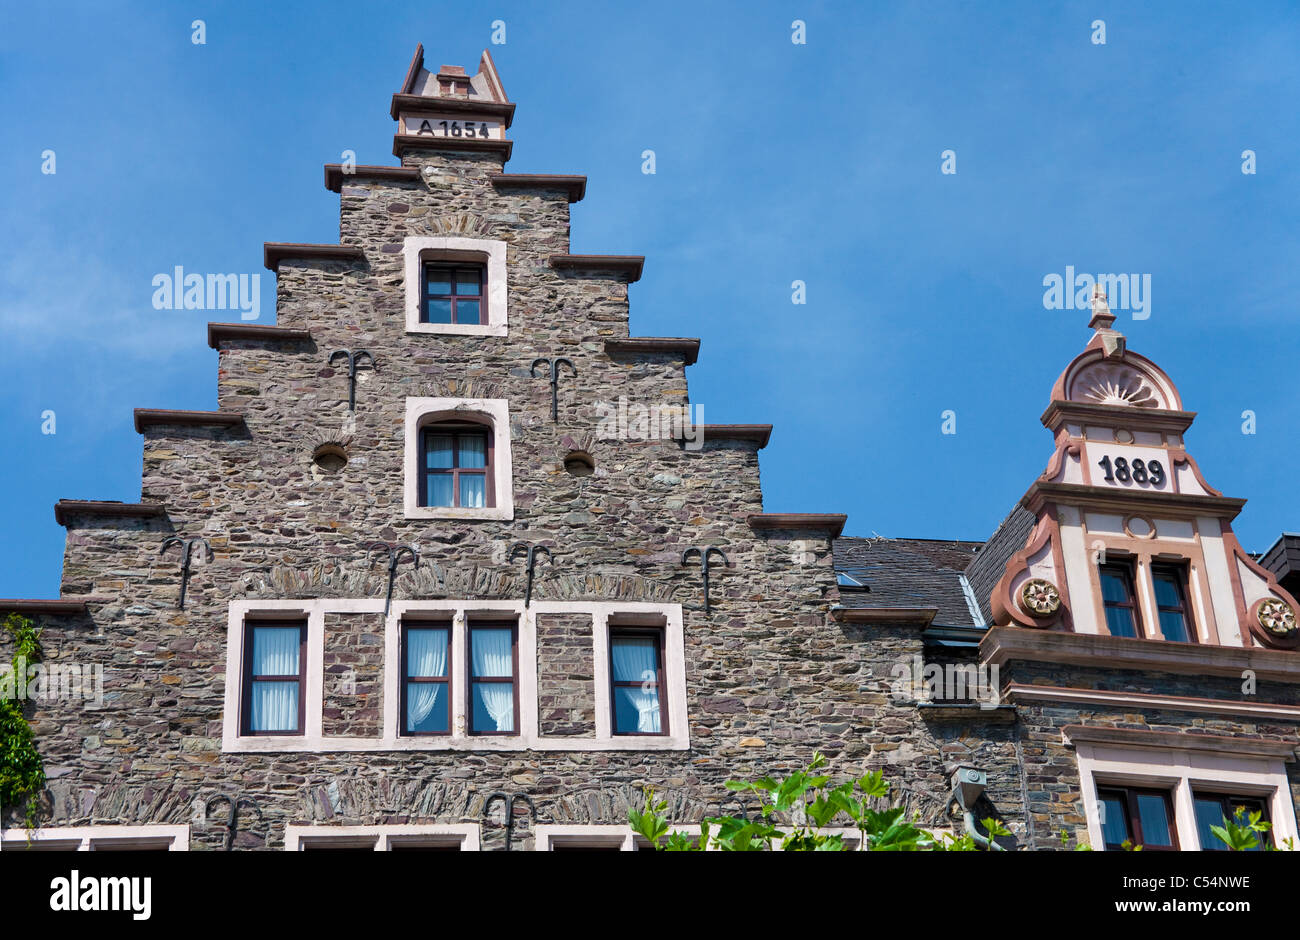 Giebel von alten Moselhaeusern in Cochem, Gable roofs, old houses at promenade in the town Cochem - Stock Image